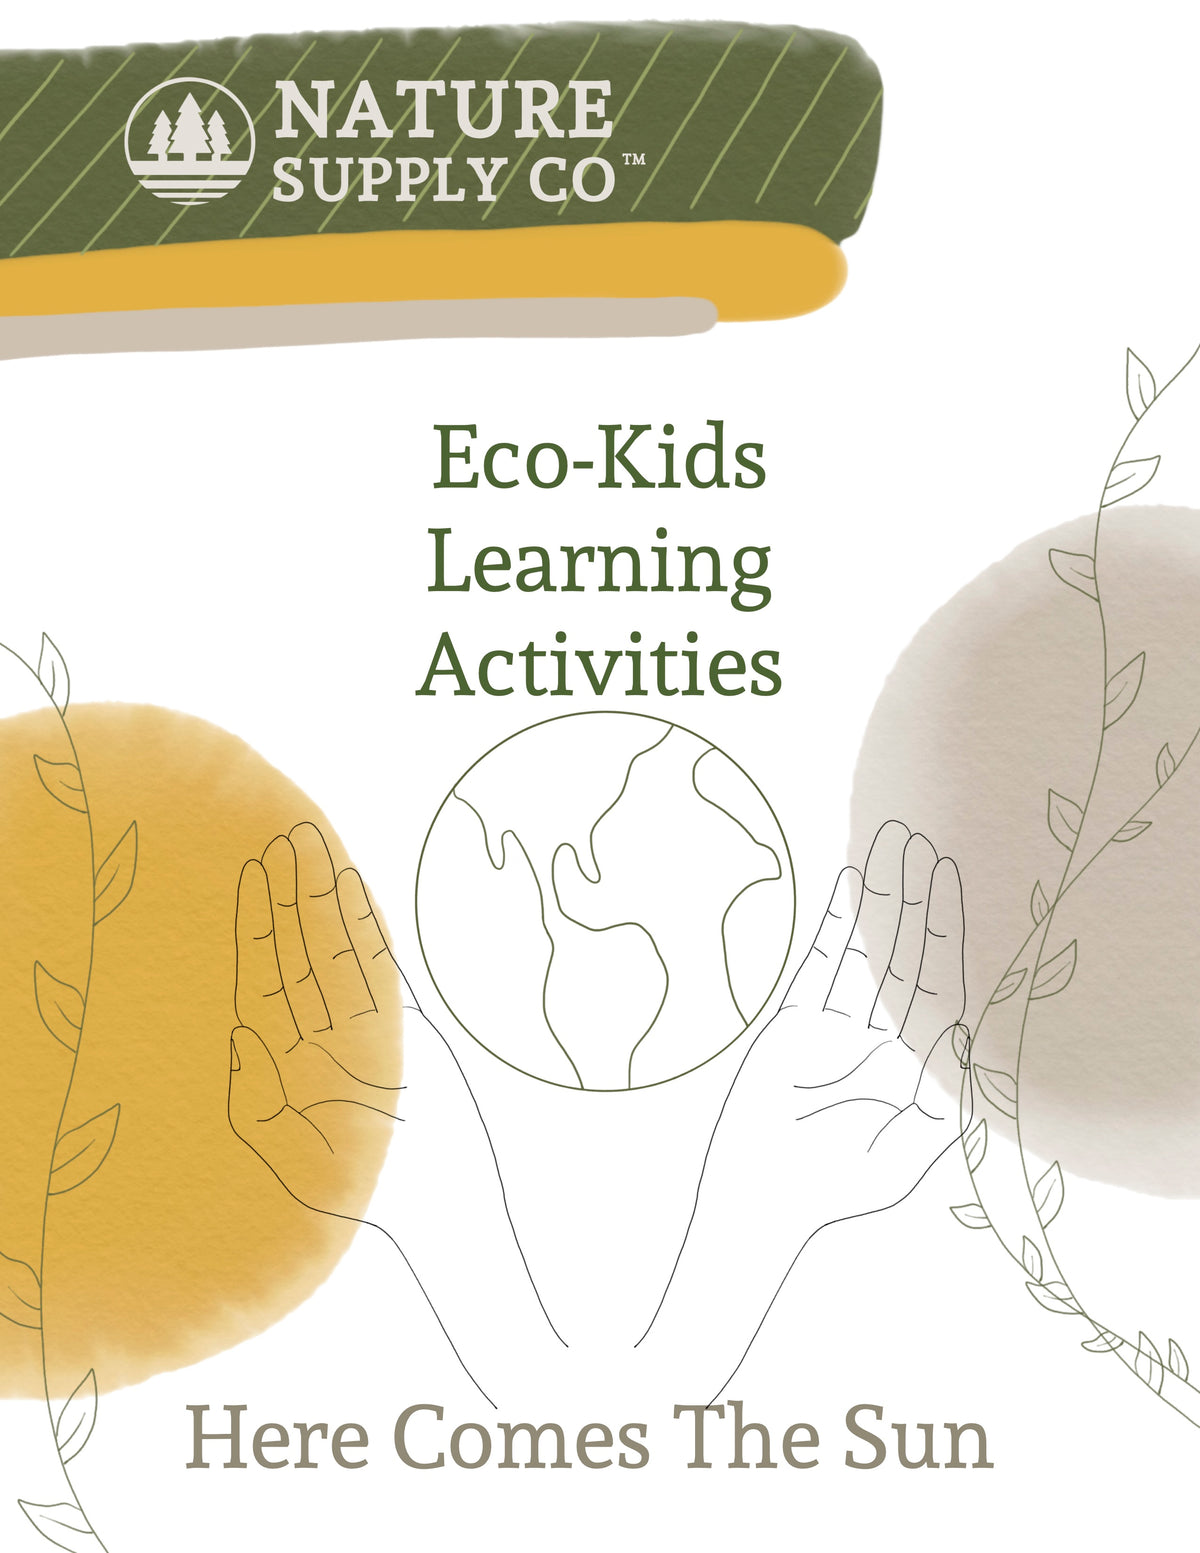 Eco-Kids Learning: Here Comes the Sun